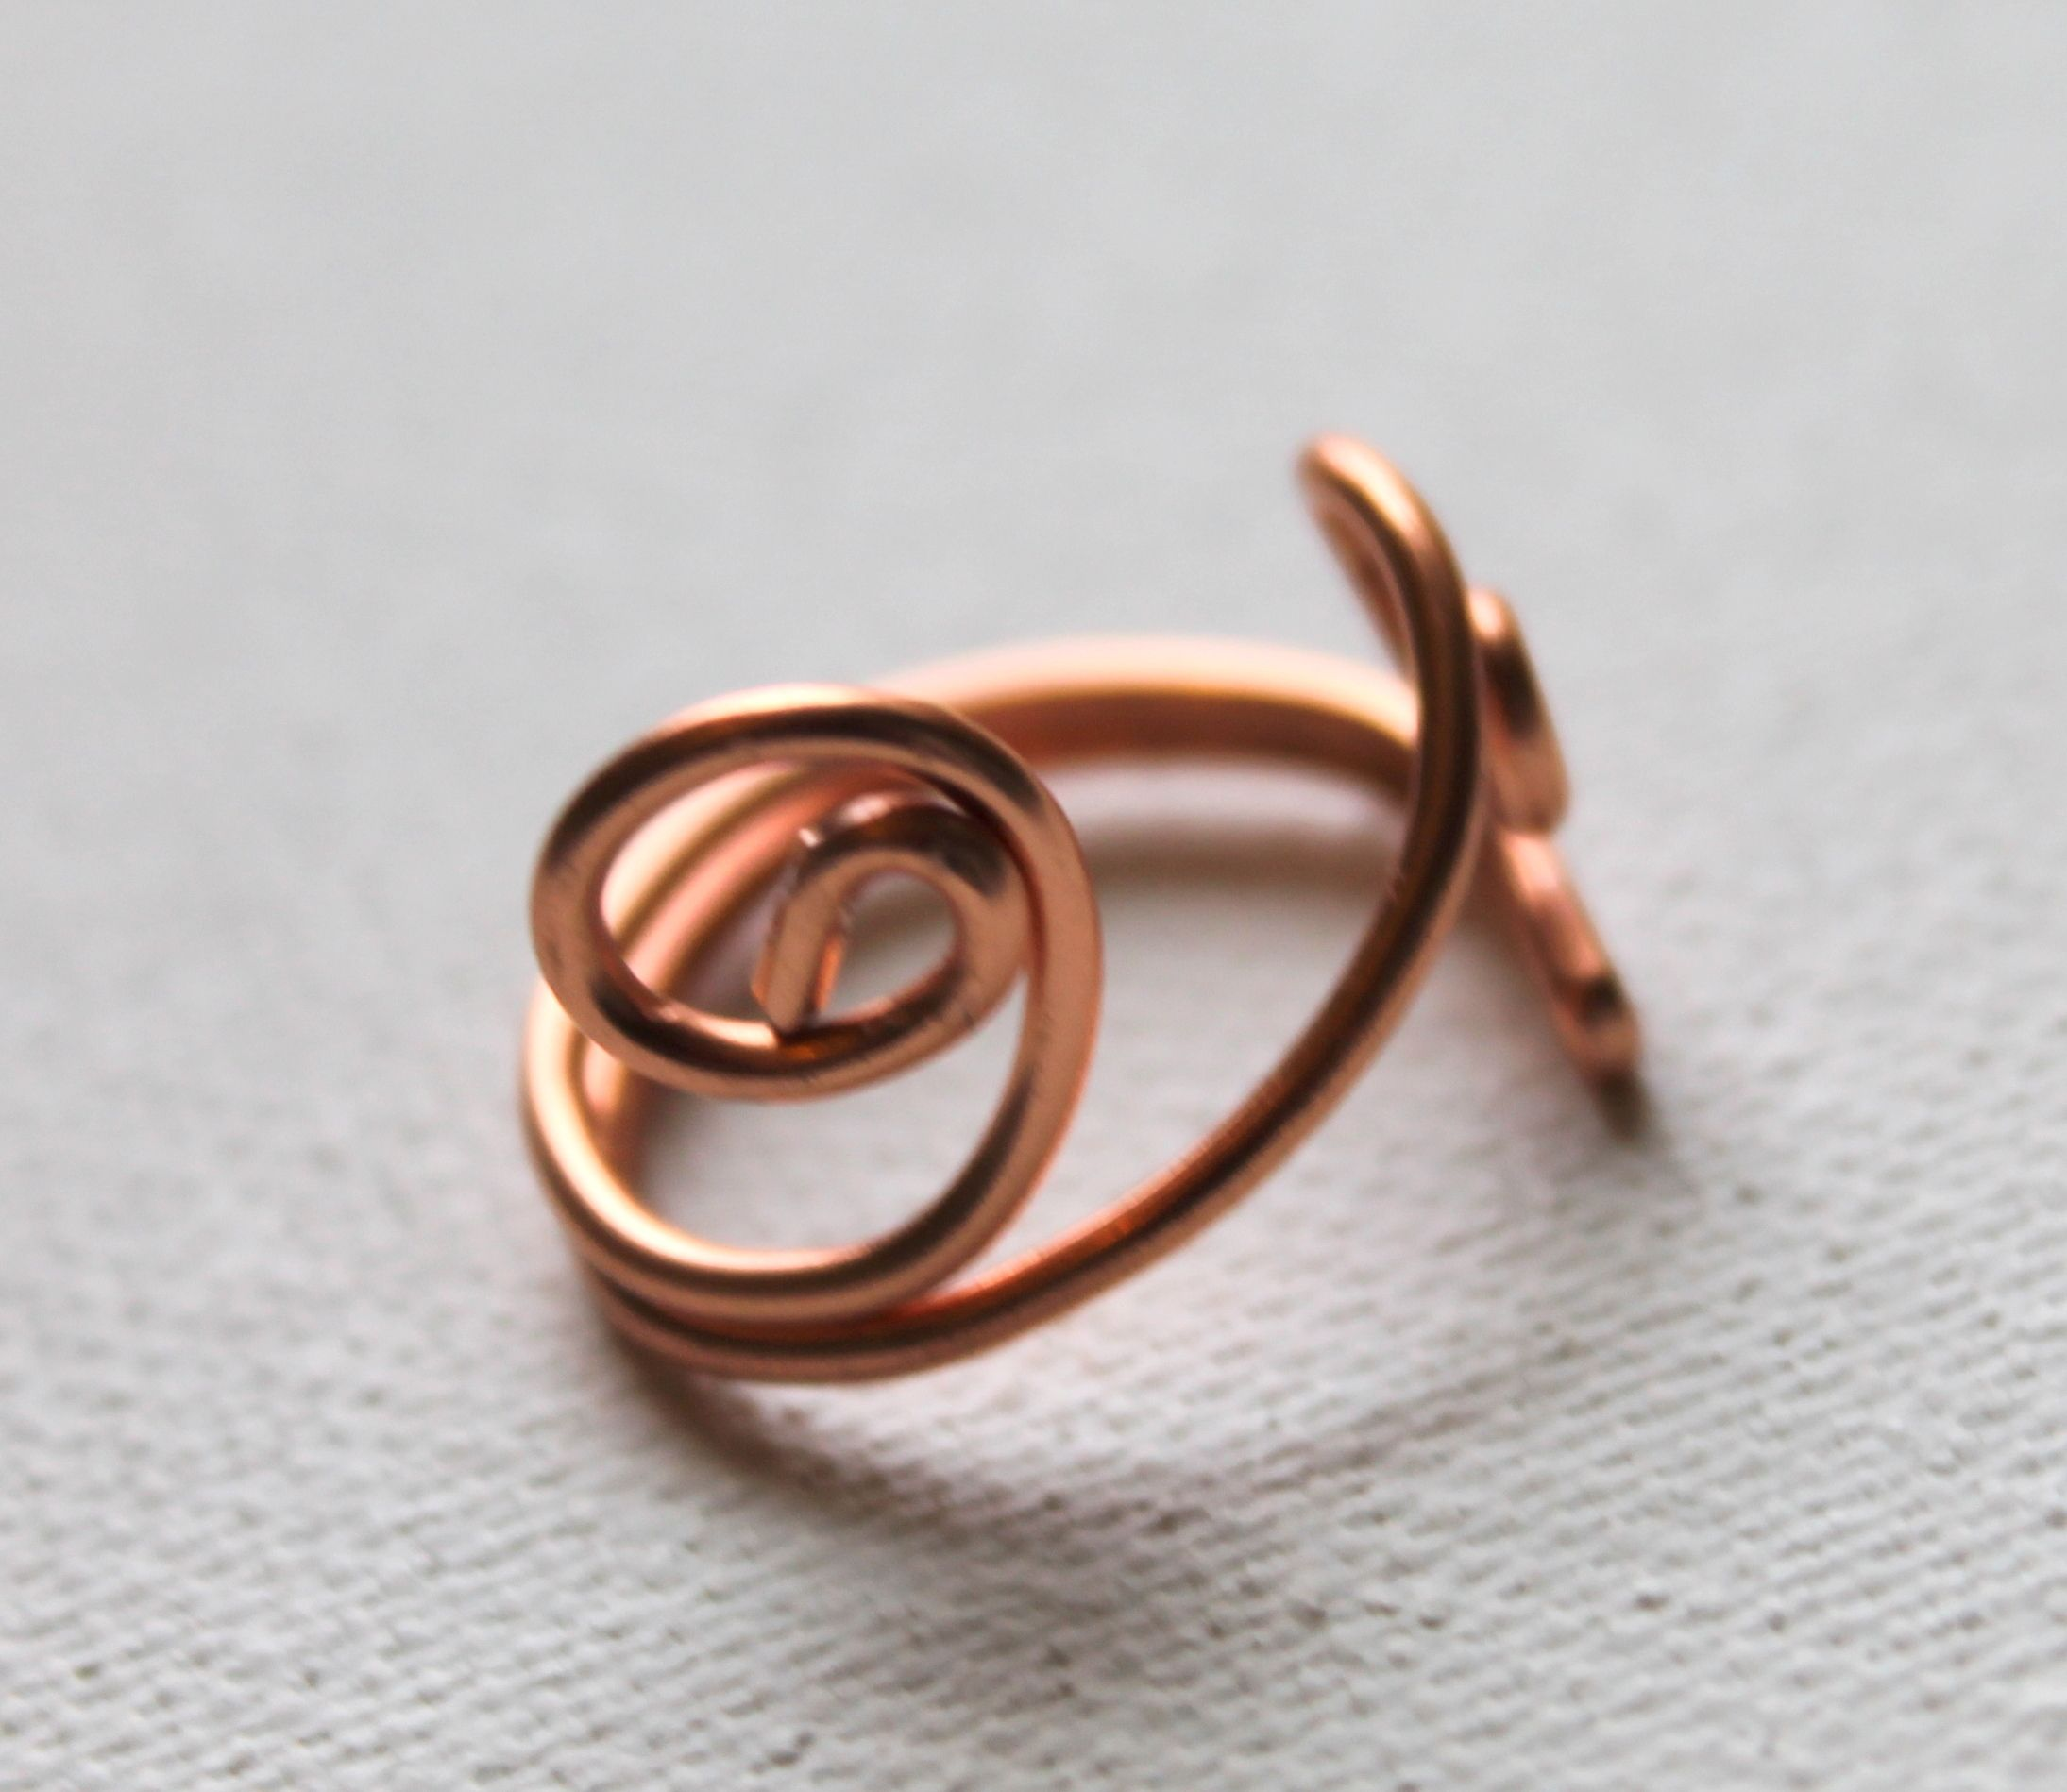 Wire Ring Tutorial | Wire Wrapped Ring Tutorials | Emerging Creatively Expressive Jewelry ...